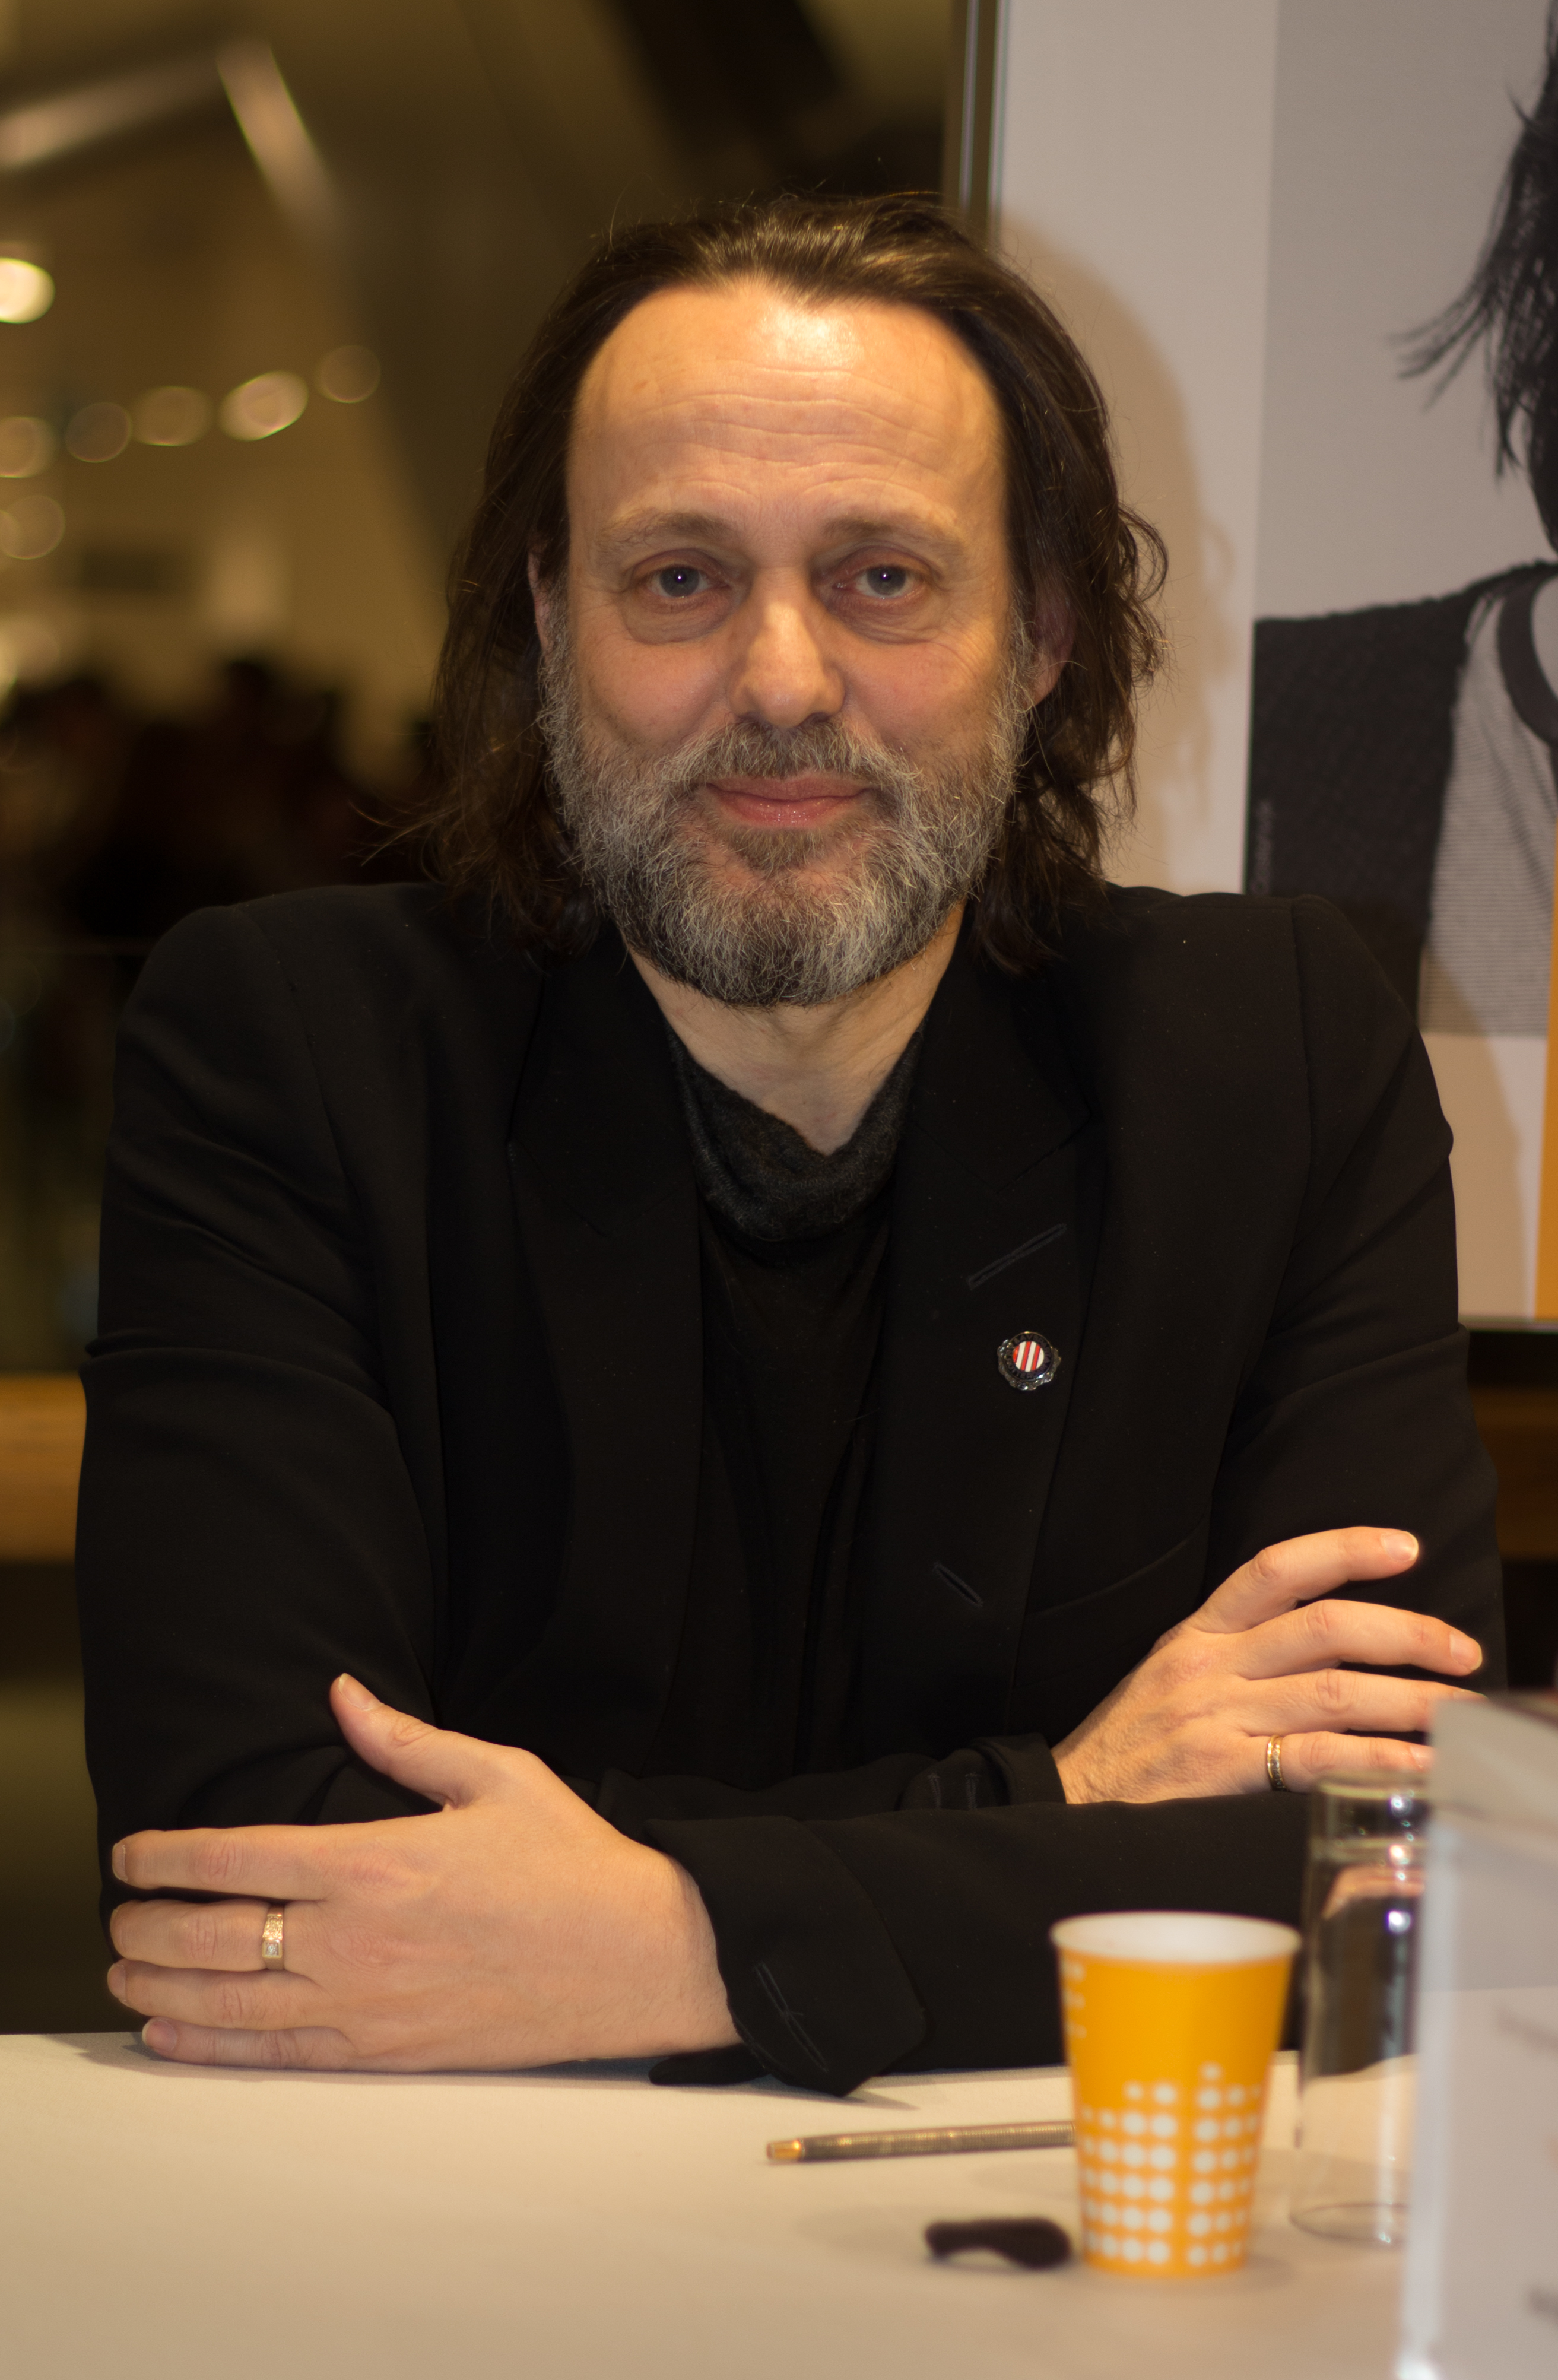 The 57-year old son of father (?) and mother(?) Hugo Borst in 2018 photo. Hugo Borst earned a  million dollar salary - leaving the net worth at 0.8 million in 2018